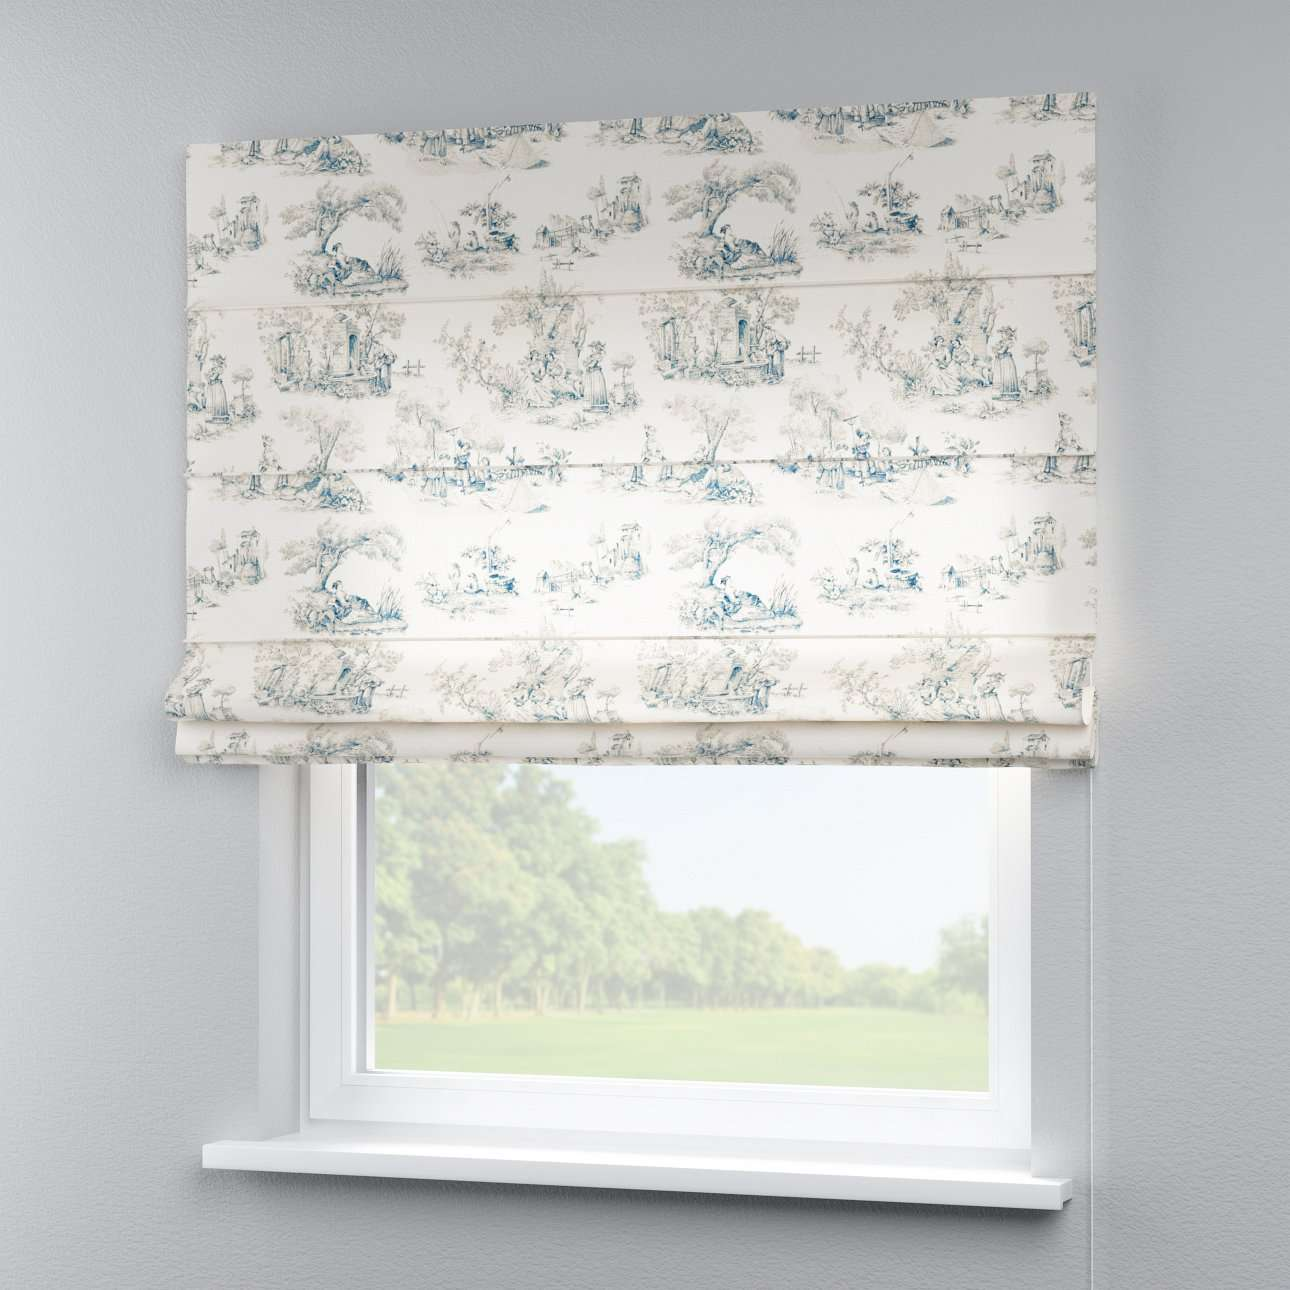 Capri roman blind 80 x 170 cm (31.5 x 67 inch) in collection Avinon, fabric: 132-66